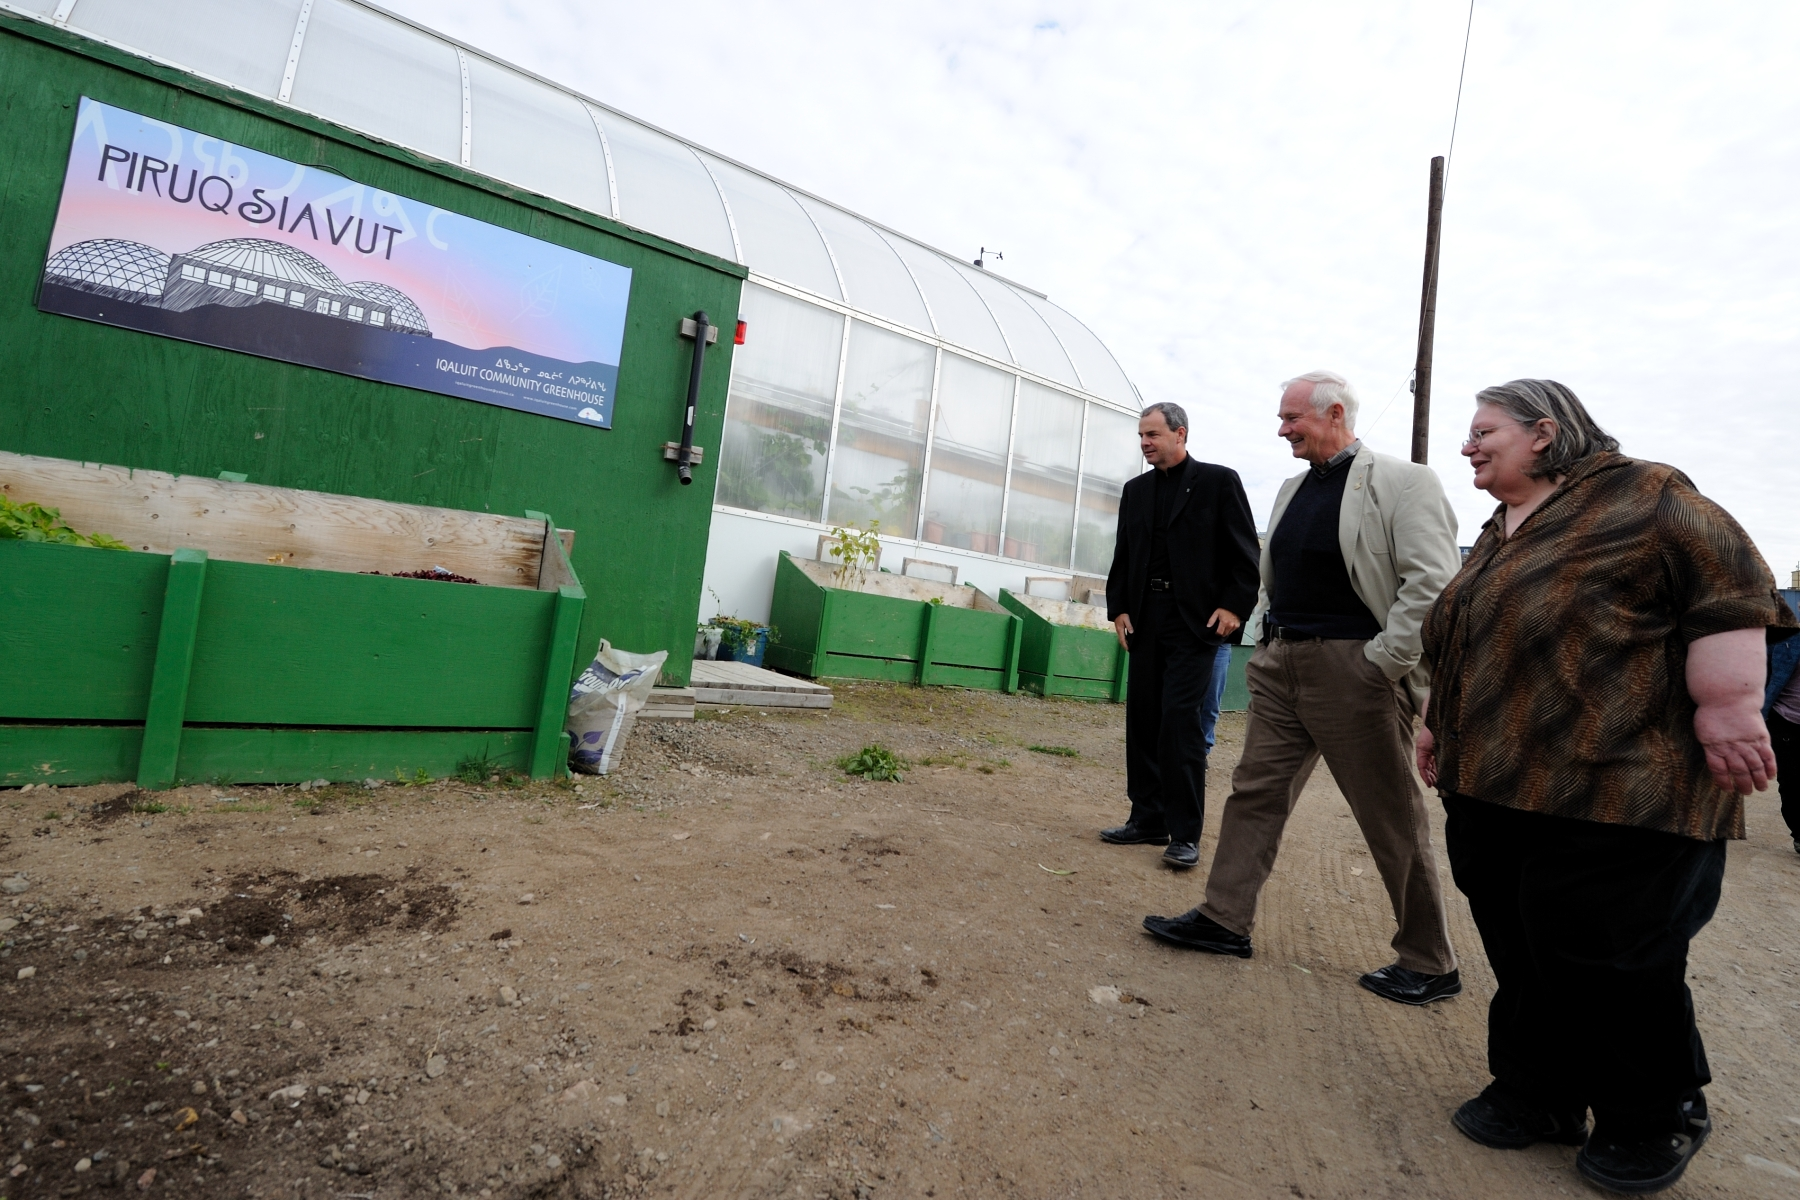 During the visit to the Nunavut Research Institute, His Excellency took a tour of the Piruqsiavut Greenhouse with Ms. Mary-Ellen Thomas, senior research officer with the Institute.